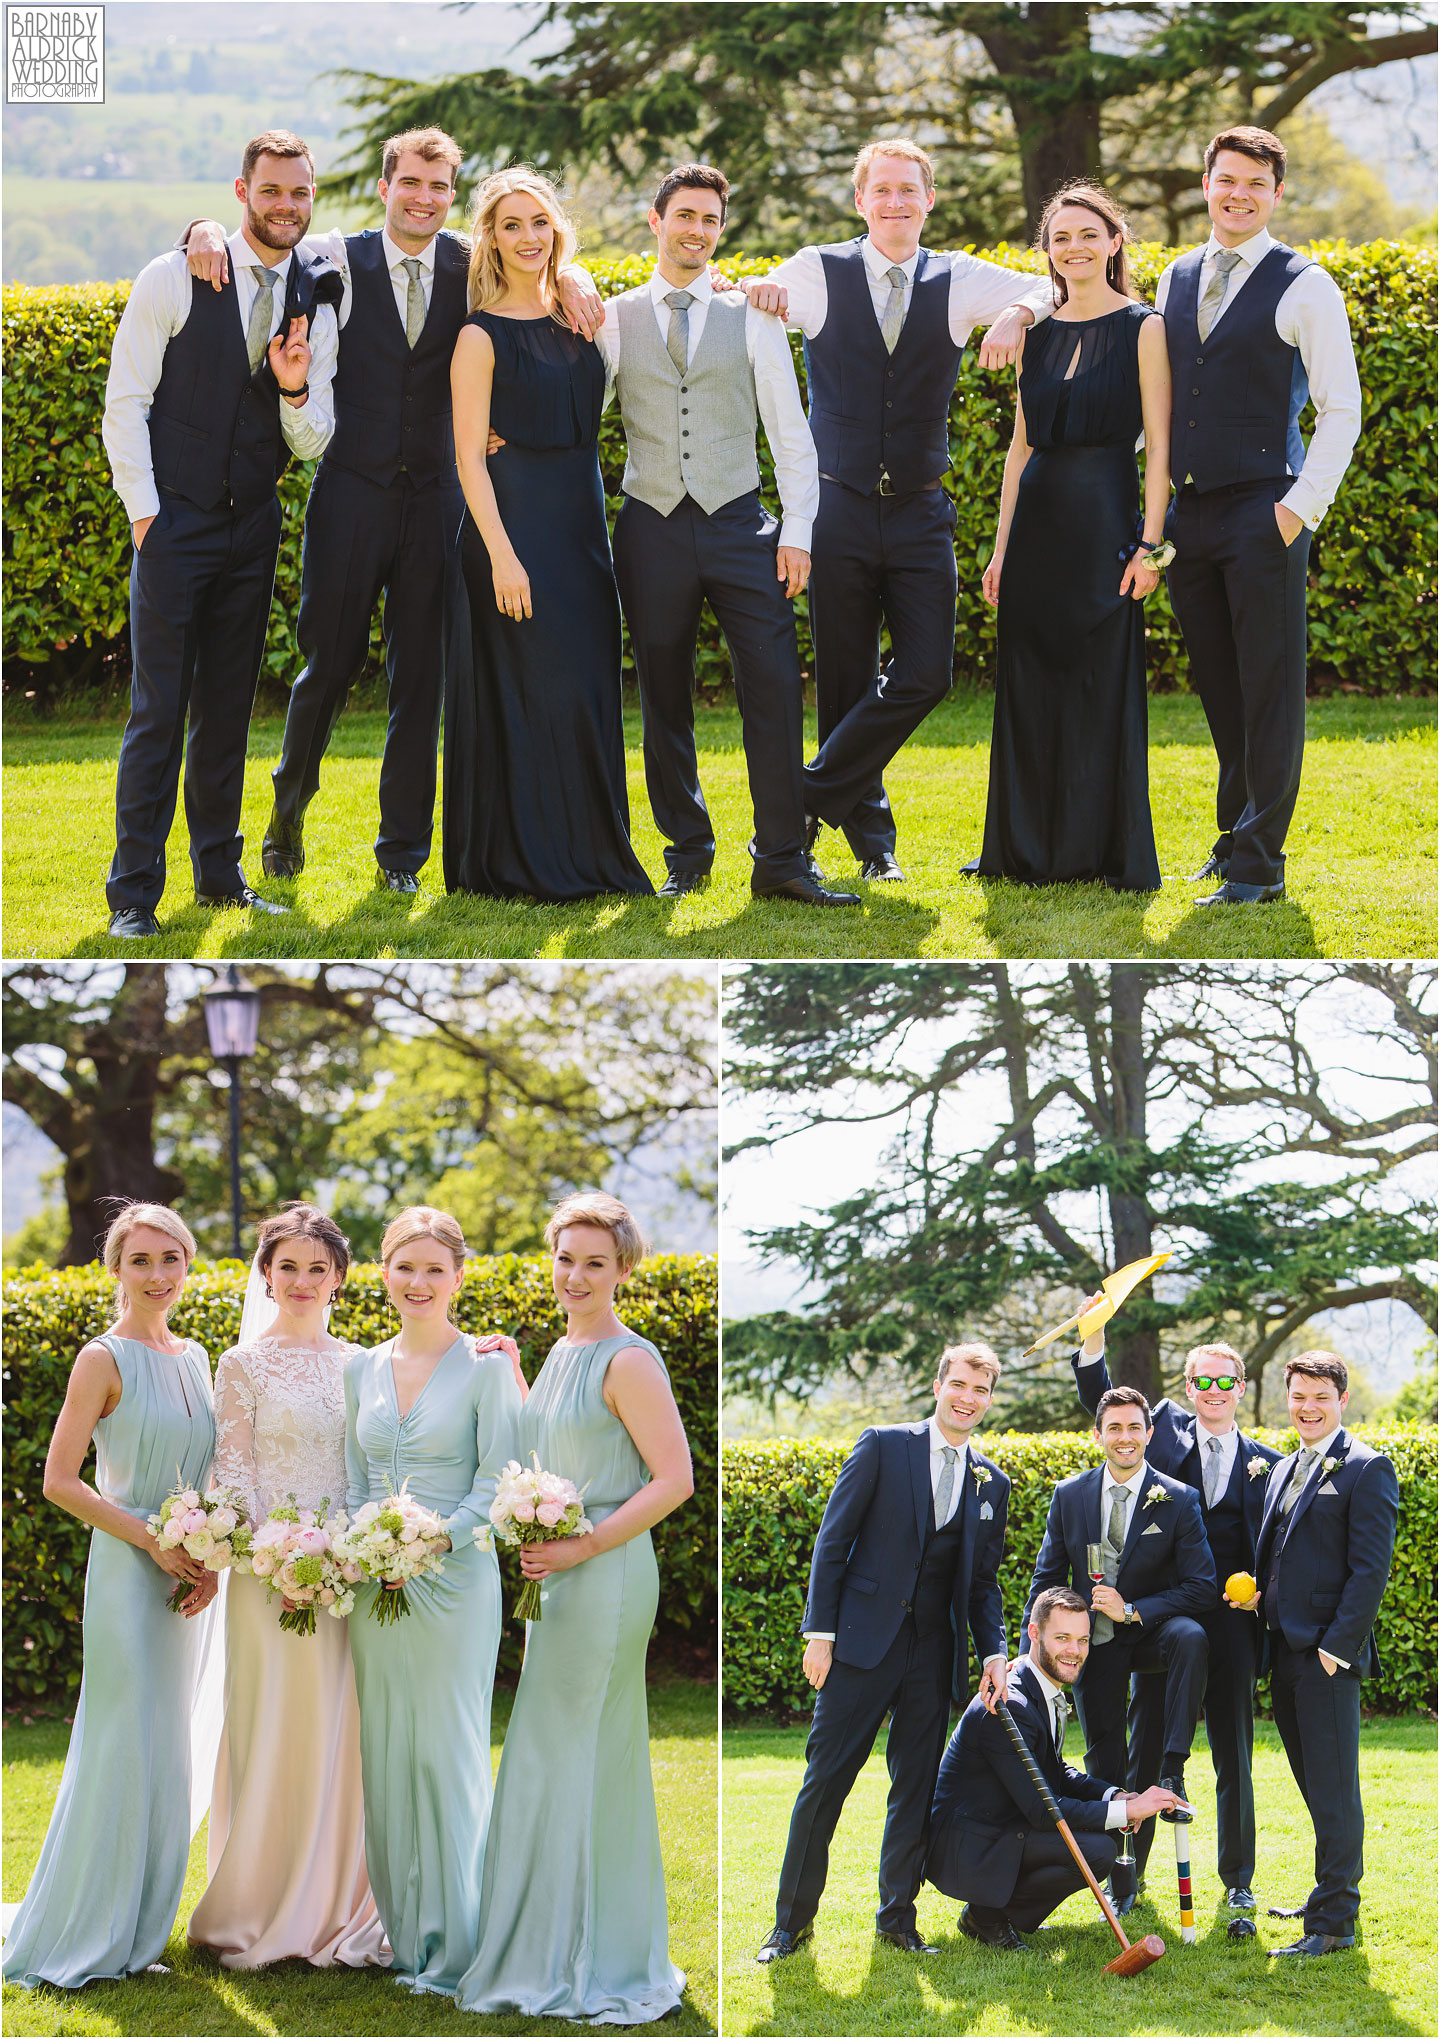 Fun Wedding group shots at Denton Hall, West Yorkshire Exclusive Wedding Venue, Wedding photos by Barnaby Aldrick